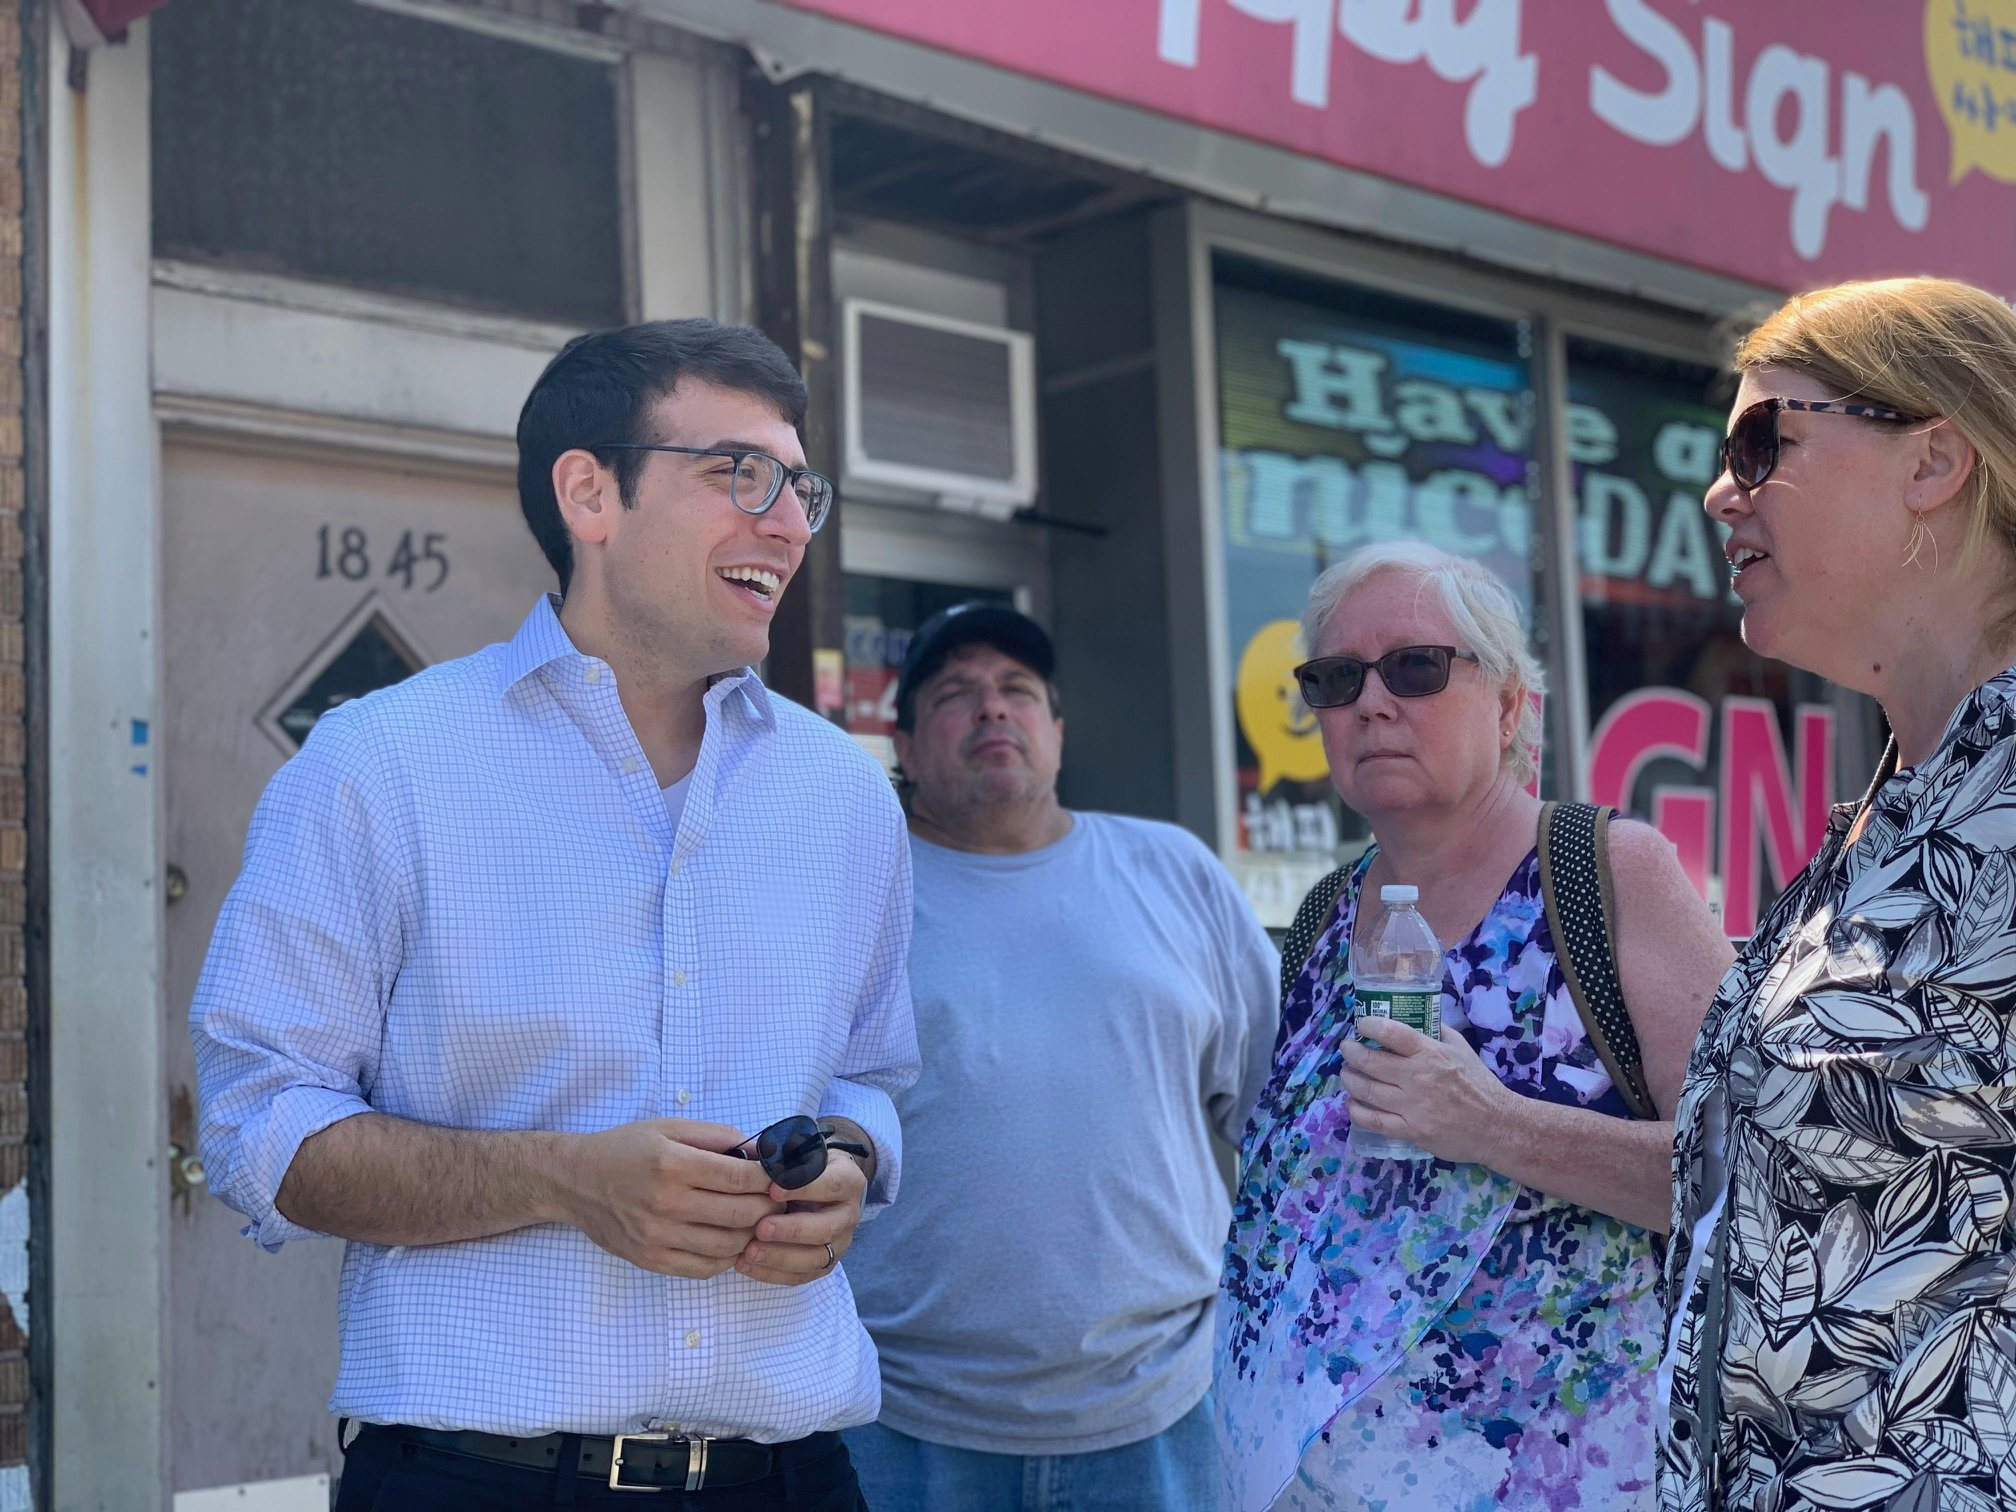 Assemblymember Rosenthal hosts a neighborhood walkthrough with leaders and small-business owners along College Point Boulevard in order to assess the needs of the community.